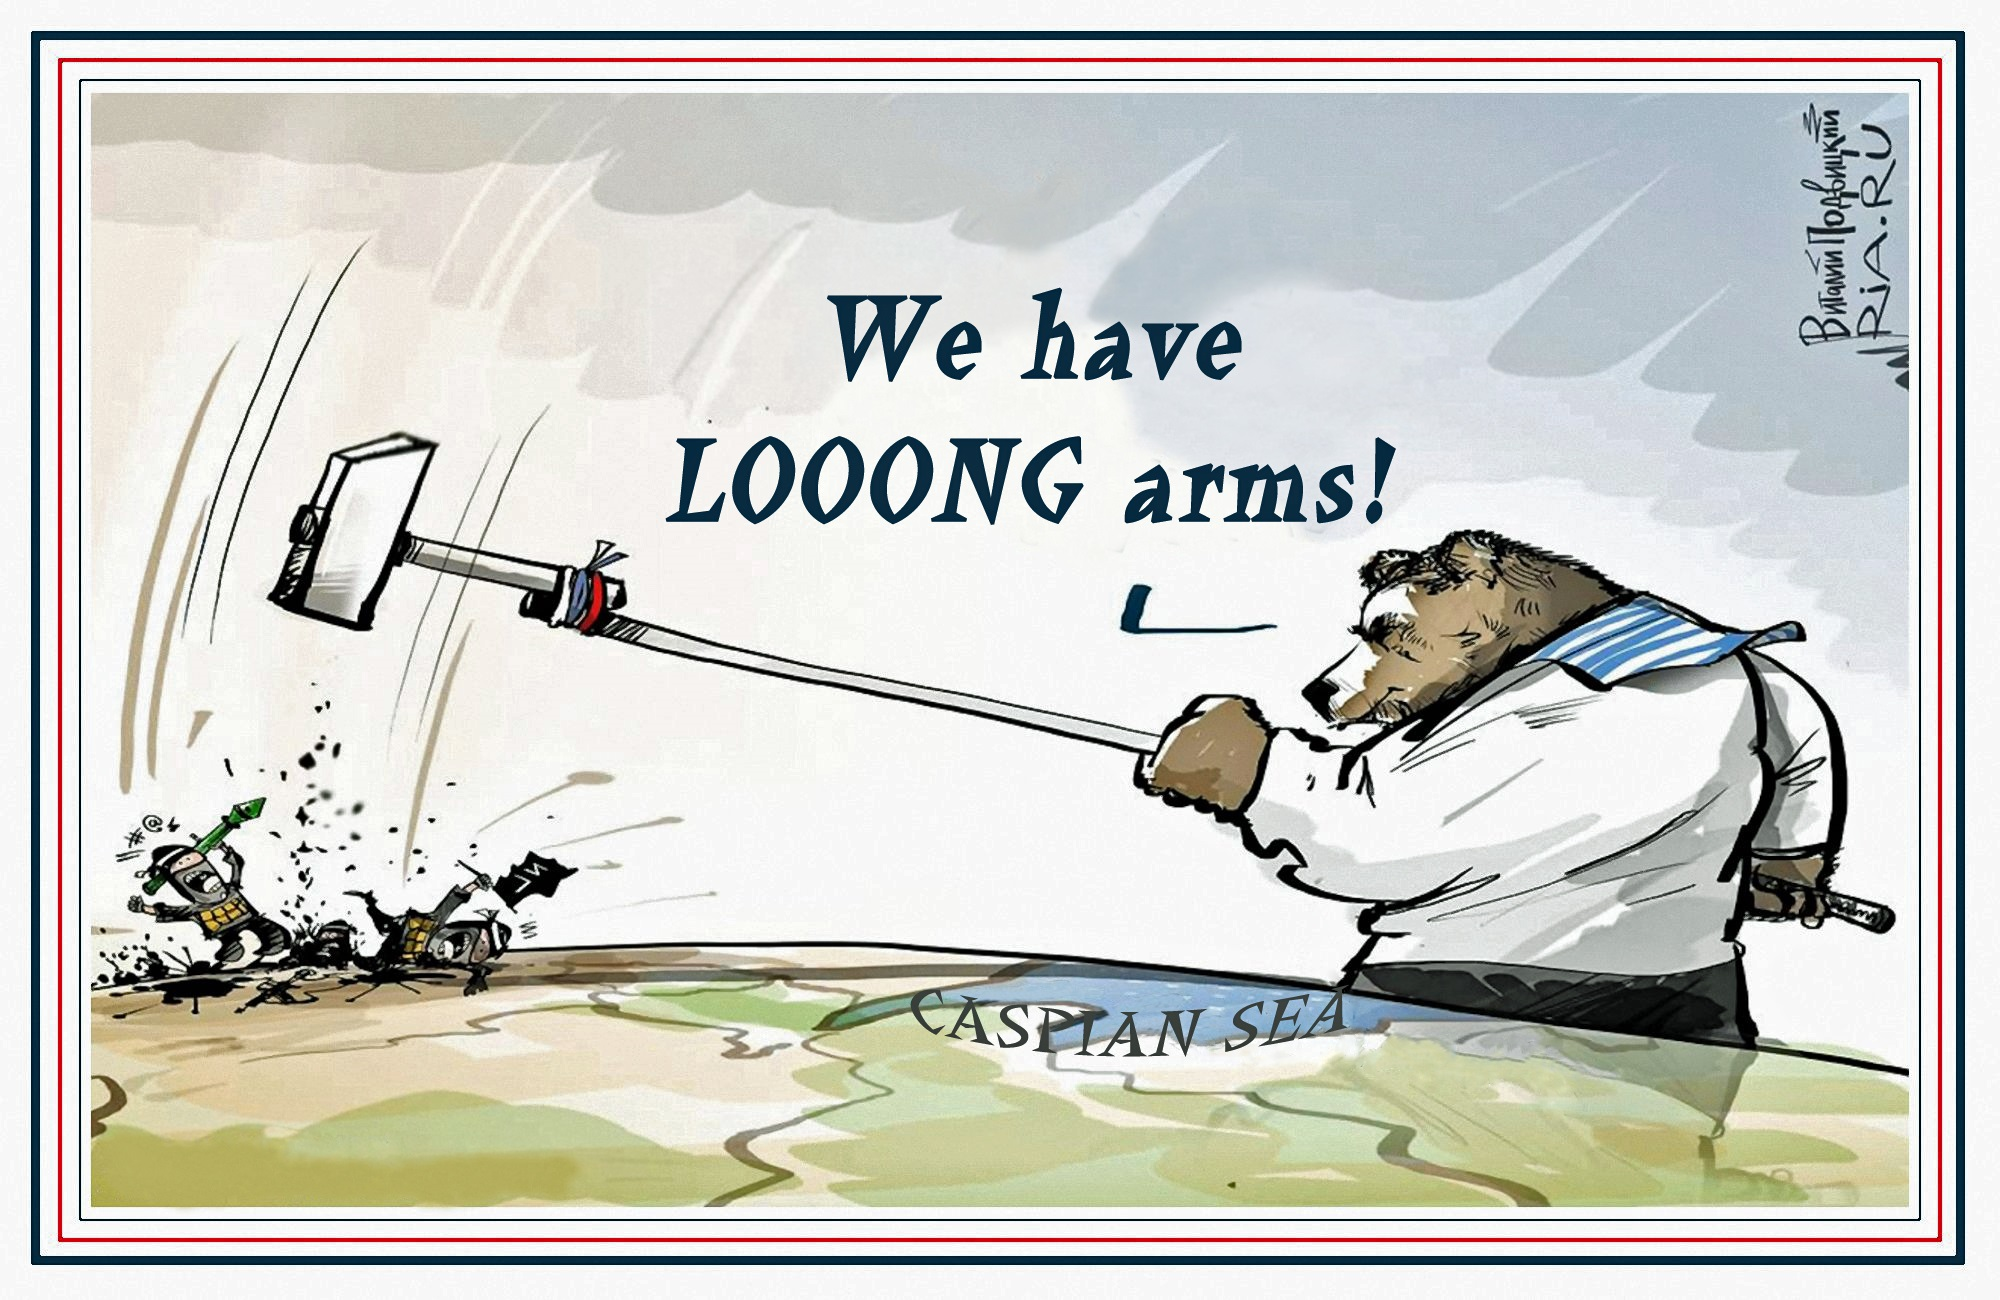 00 Vitaly Podvitsky. We have LOOONG arms! 2015